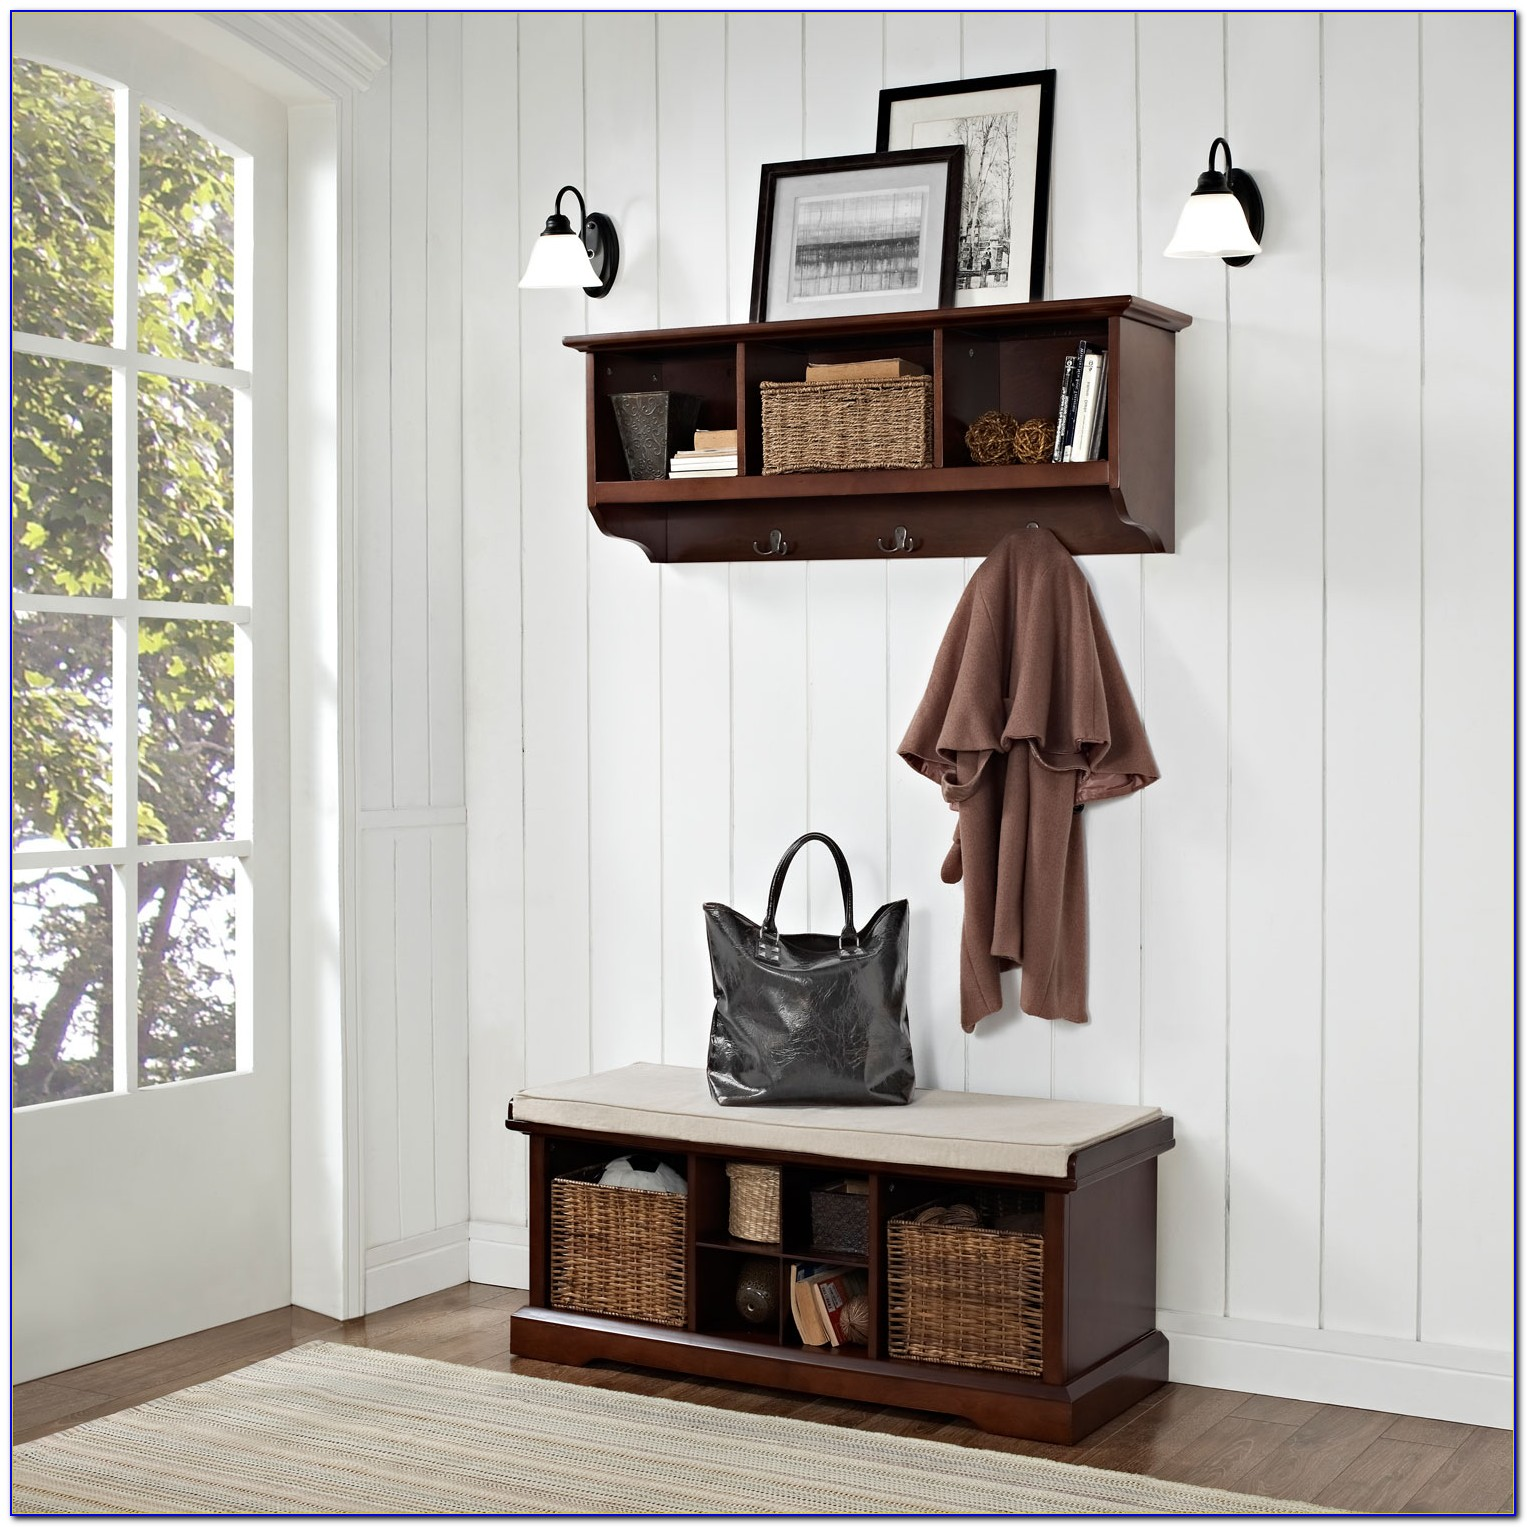 Entry Bench And Shelf Set